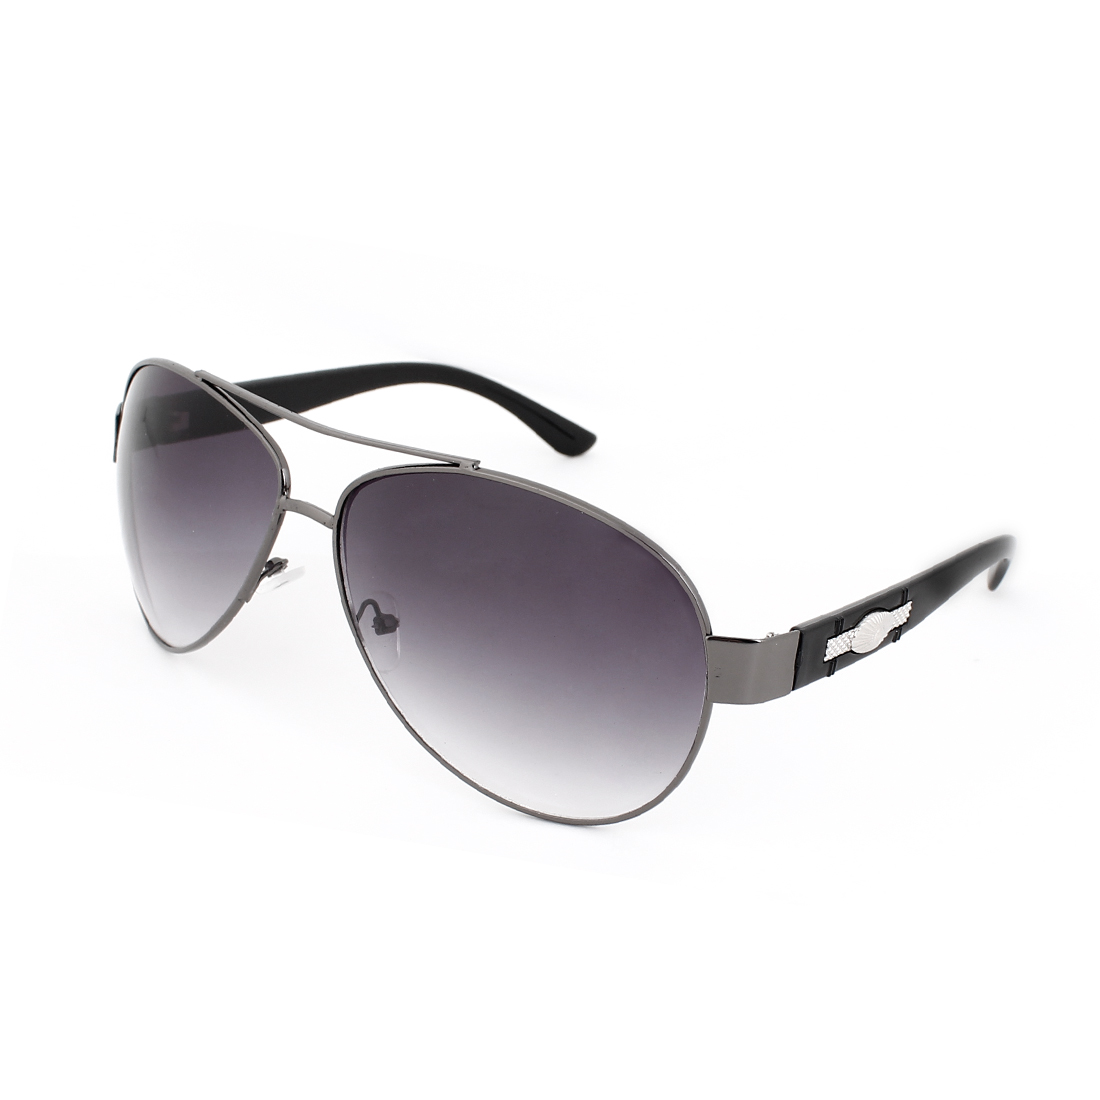 Colored Tear Drops Len Oval Shaped Metal Inlaid Arm Sunglasses for Men